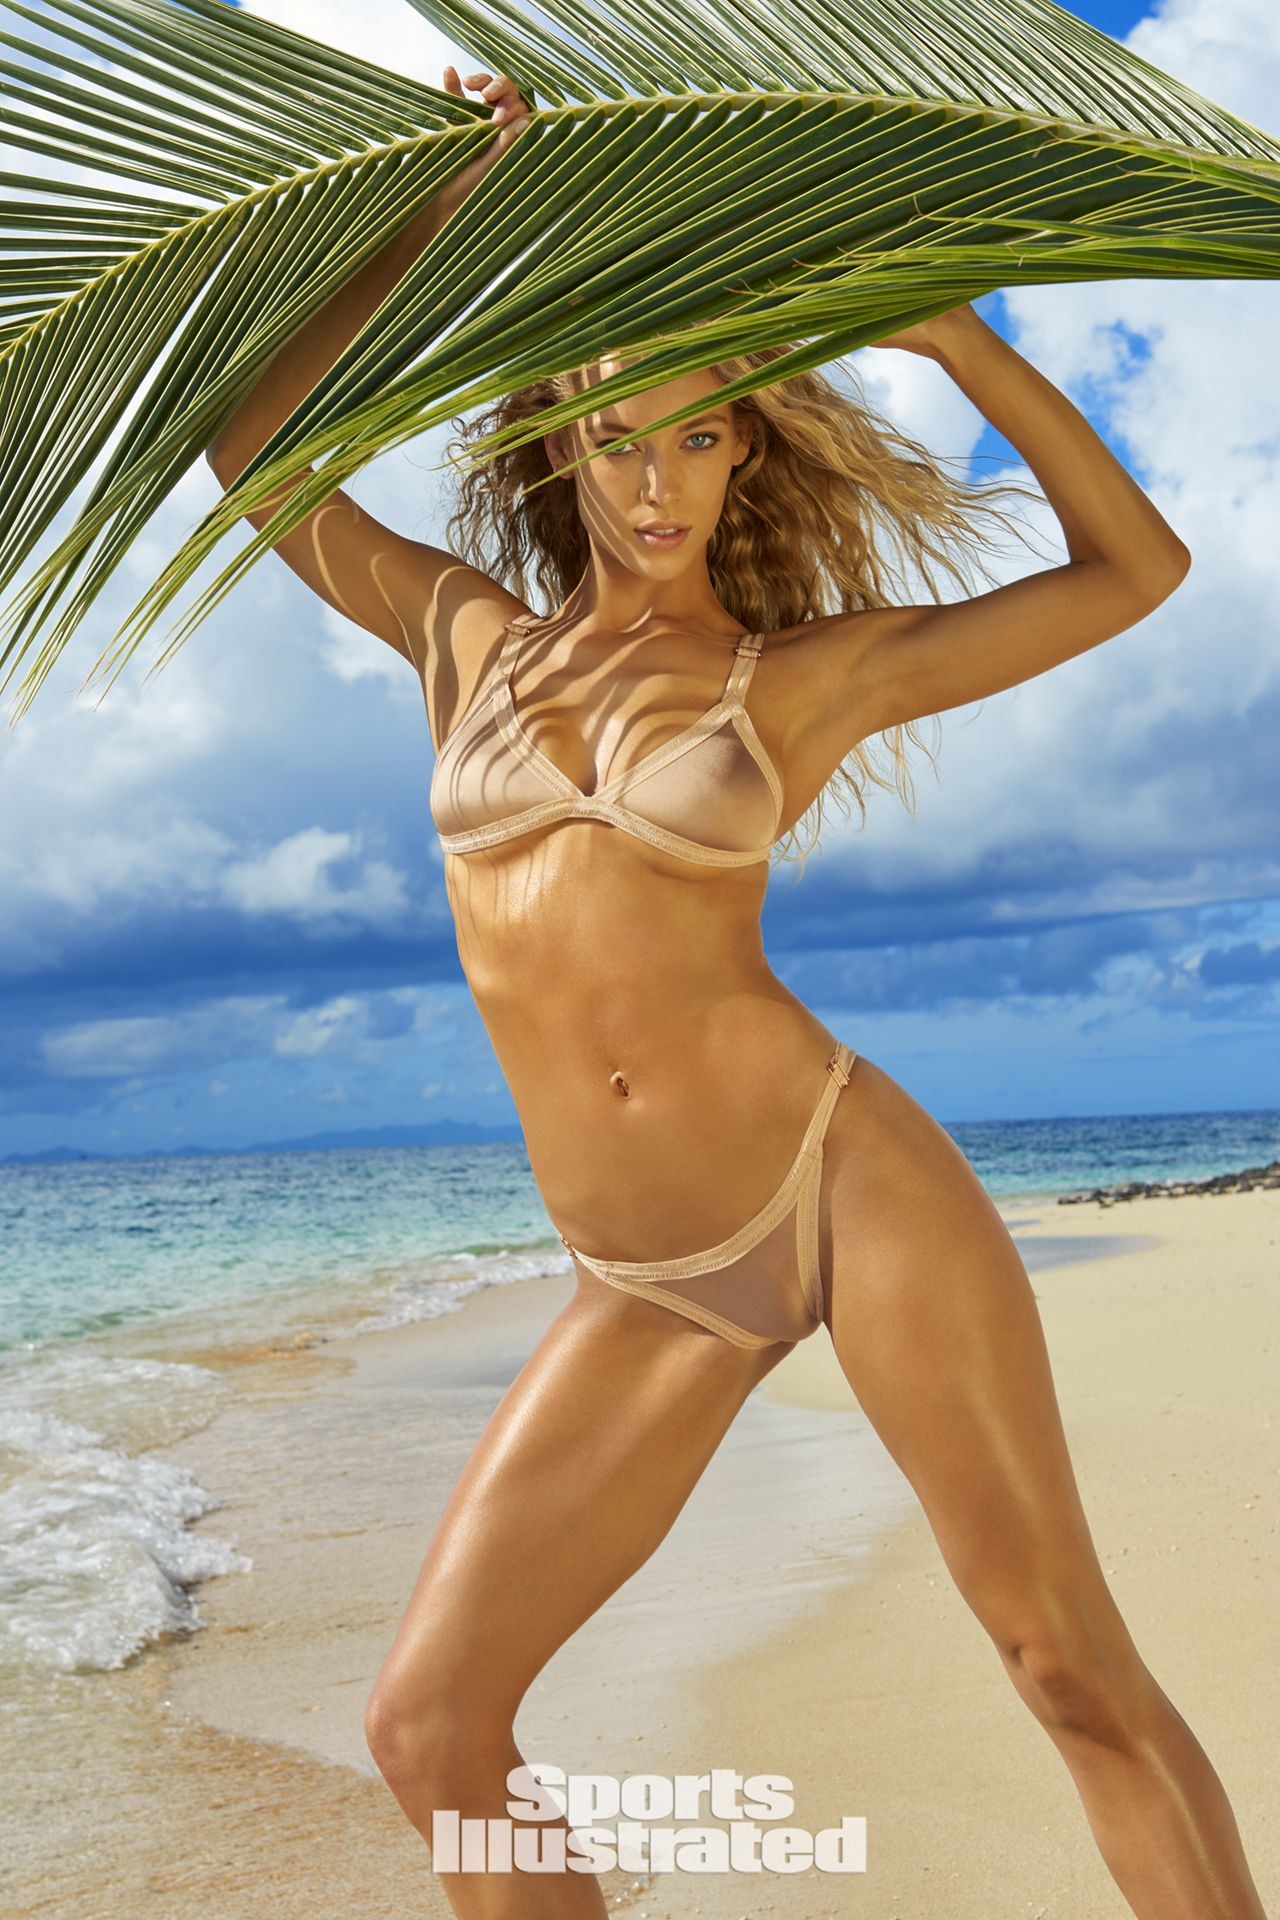 a558c9343cba Hannah Ferguson was photographed by Yu Tsai in Fiji. Swimsuit by Leah  Shlaer.